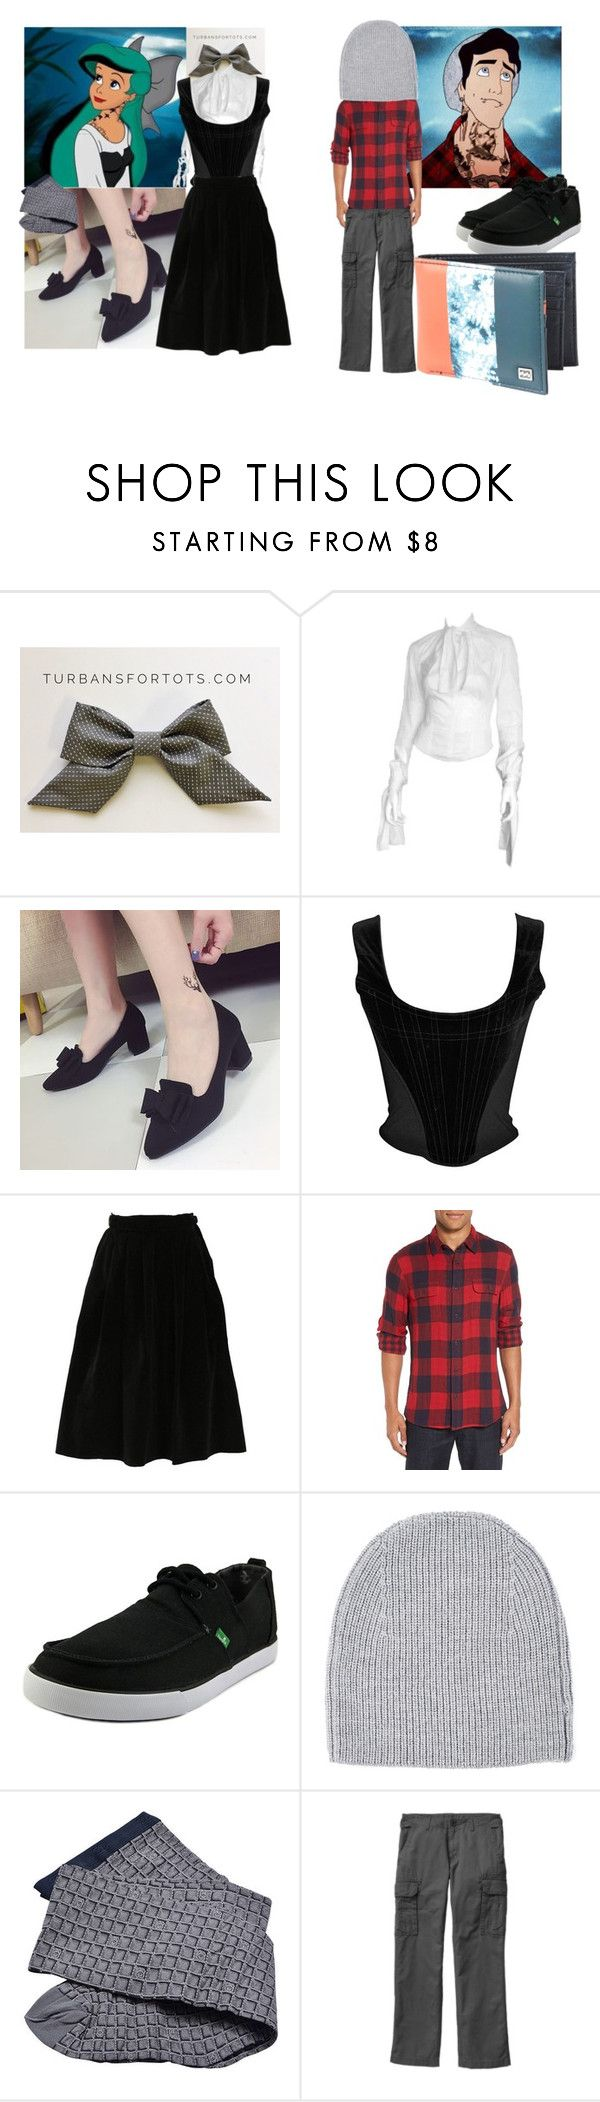 """""""Kiss the Punk"""" by lerp ❤ liked on Polyvore featuring Disney, Tom Ford, Vivienne Westwood, Christian Dior, Nordstrom, sanuk, Chanel, Gap, Billabong and men's fashion"""